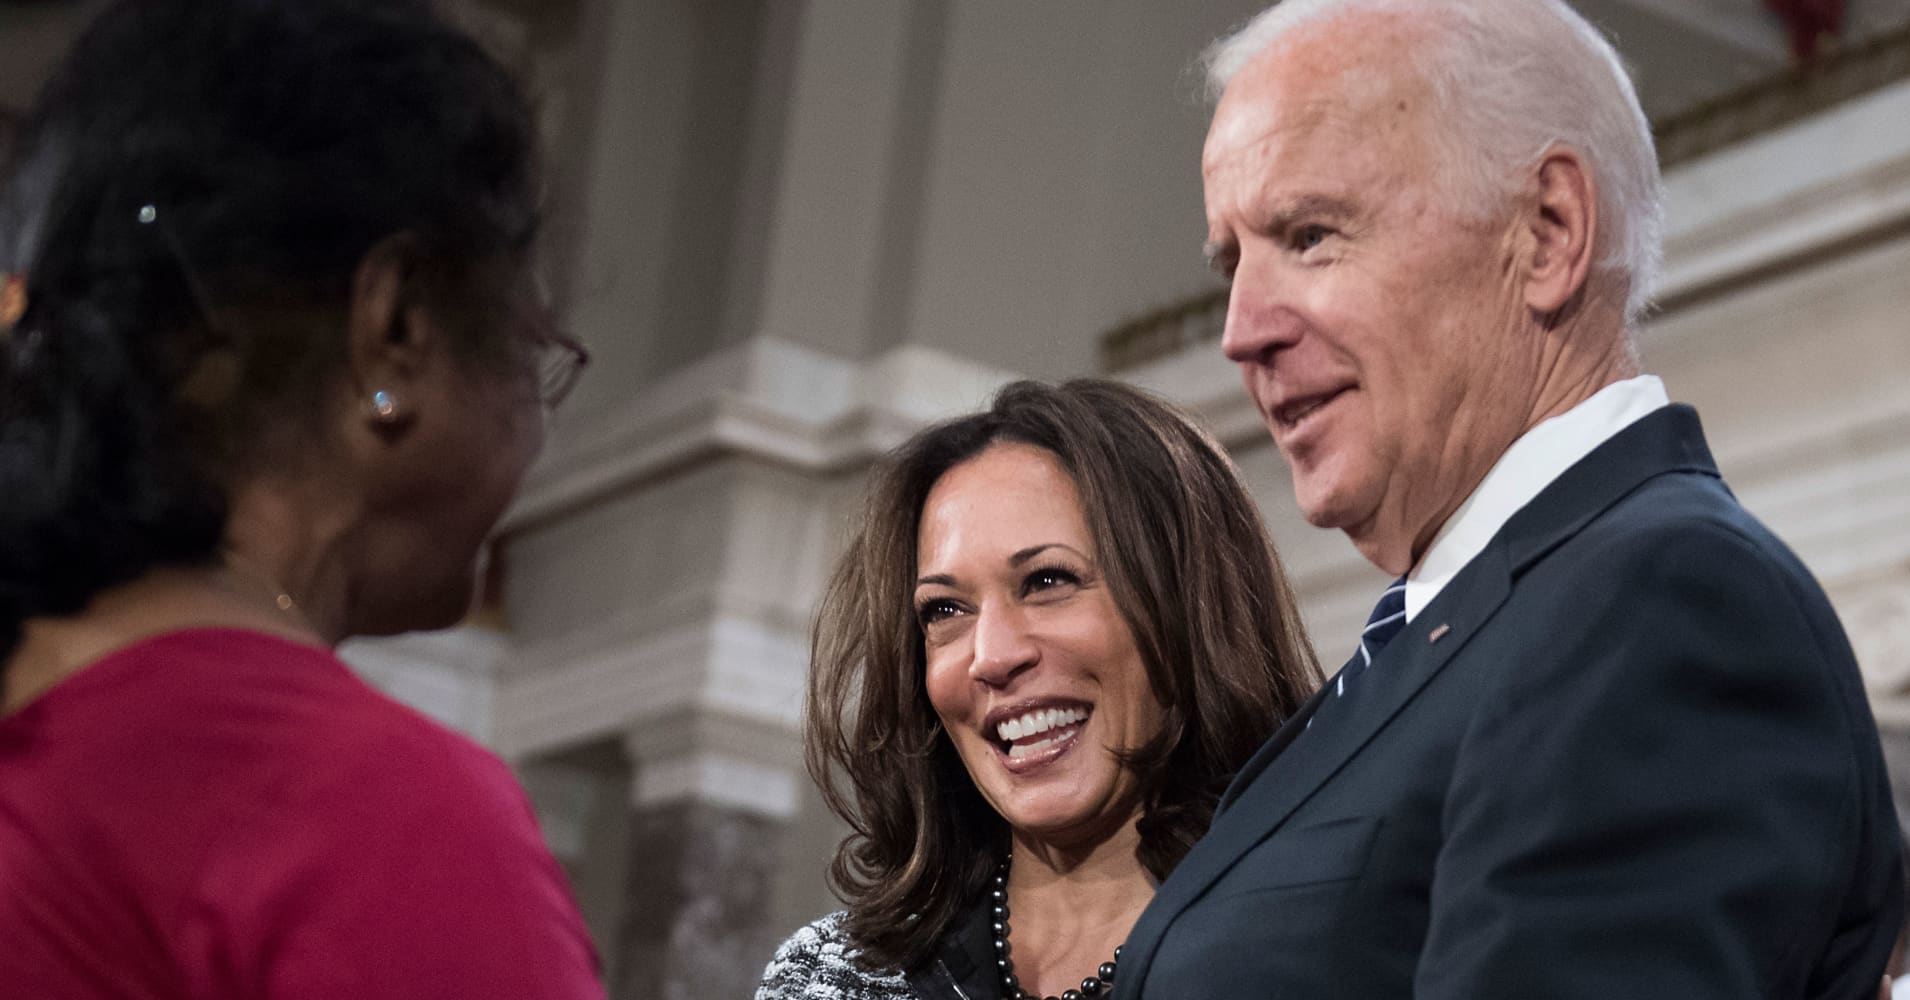 Joe Biden and Kamala Harris are likely the top contenders for Barack Obama's endorsement in 2020